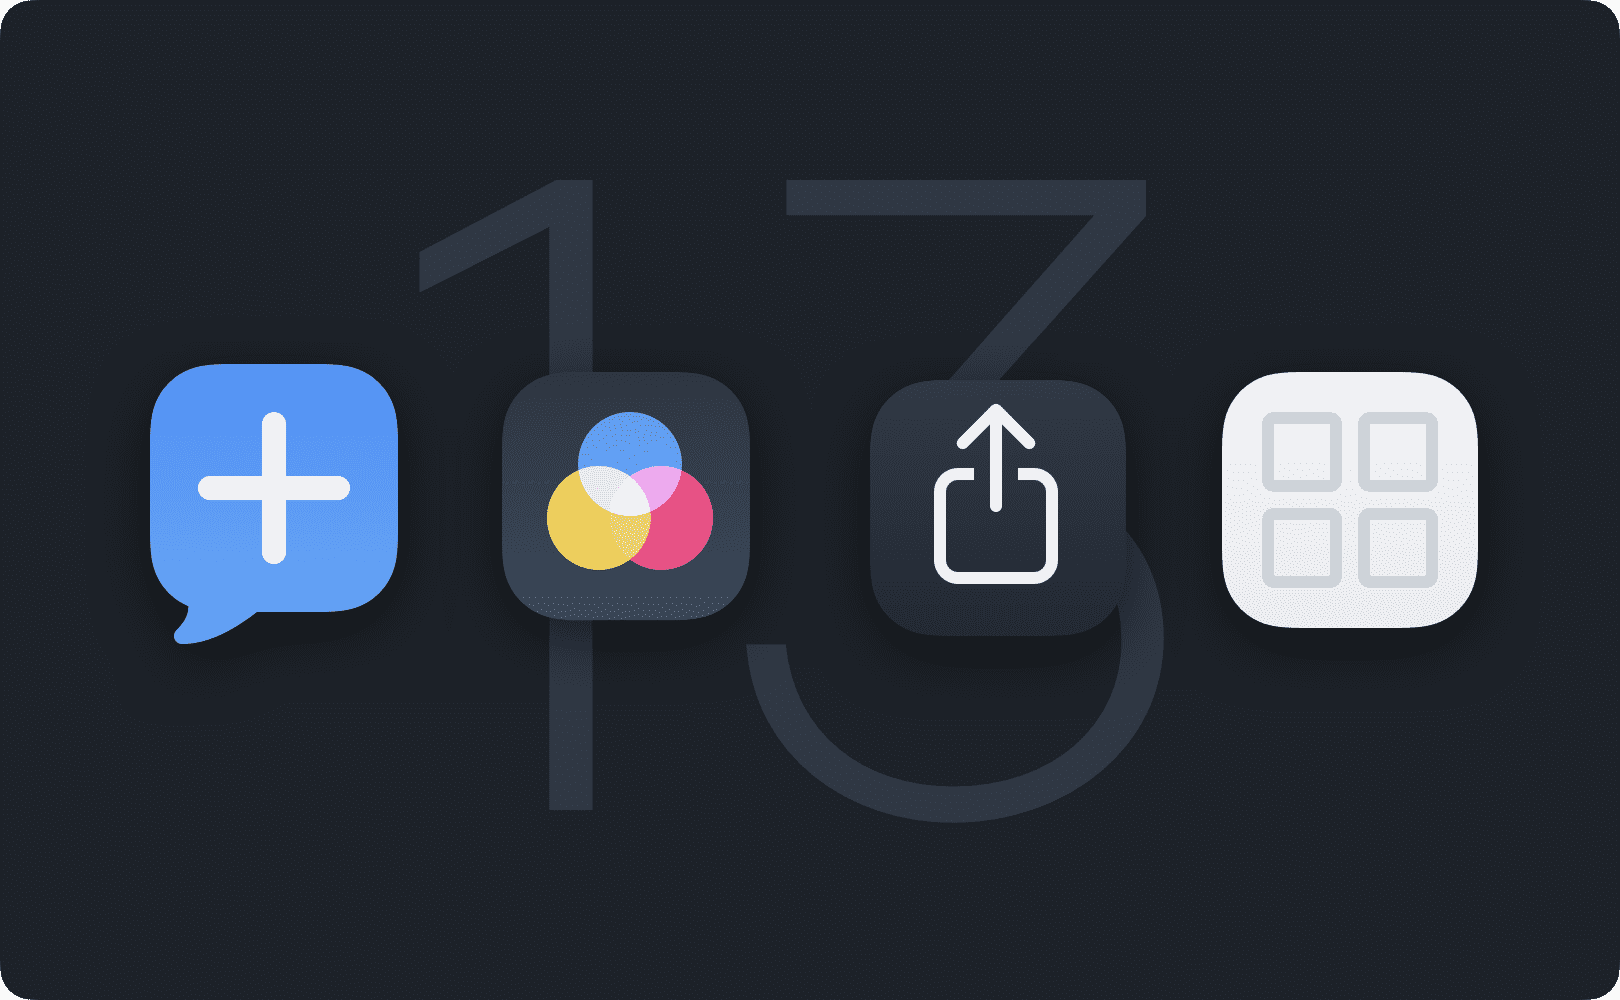 Things 3.10 for iPhone and iPadOS